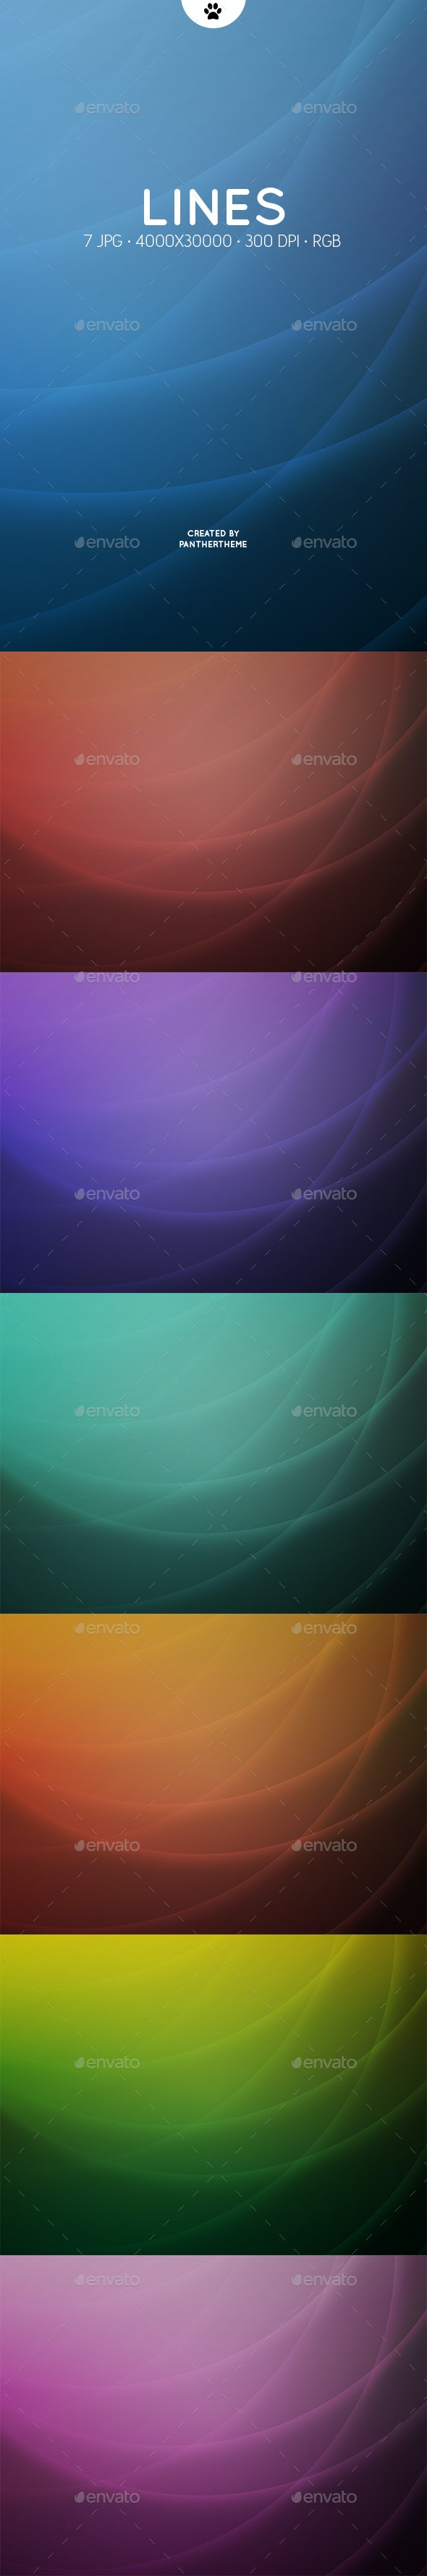 Light Lines Backgrounds - Abstract Backgrounds